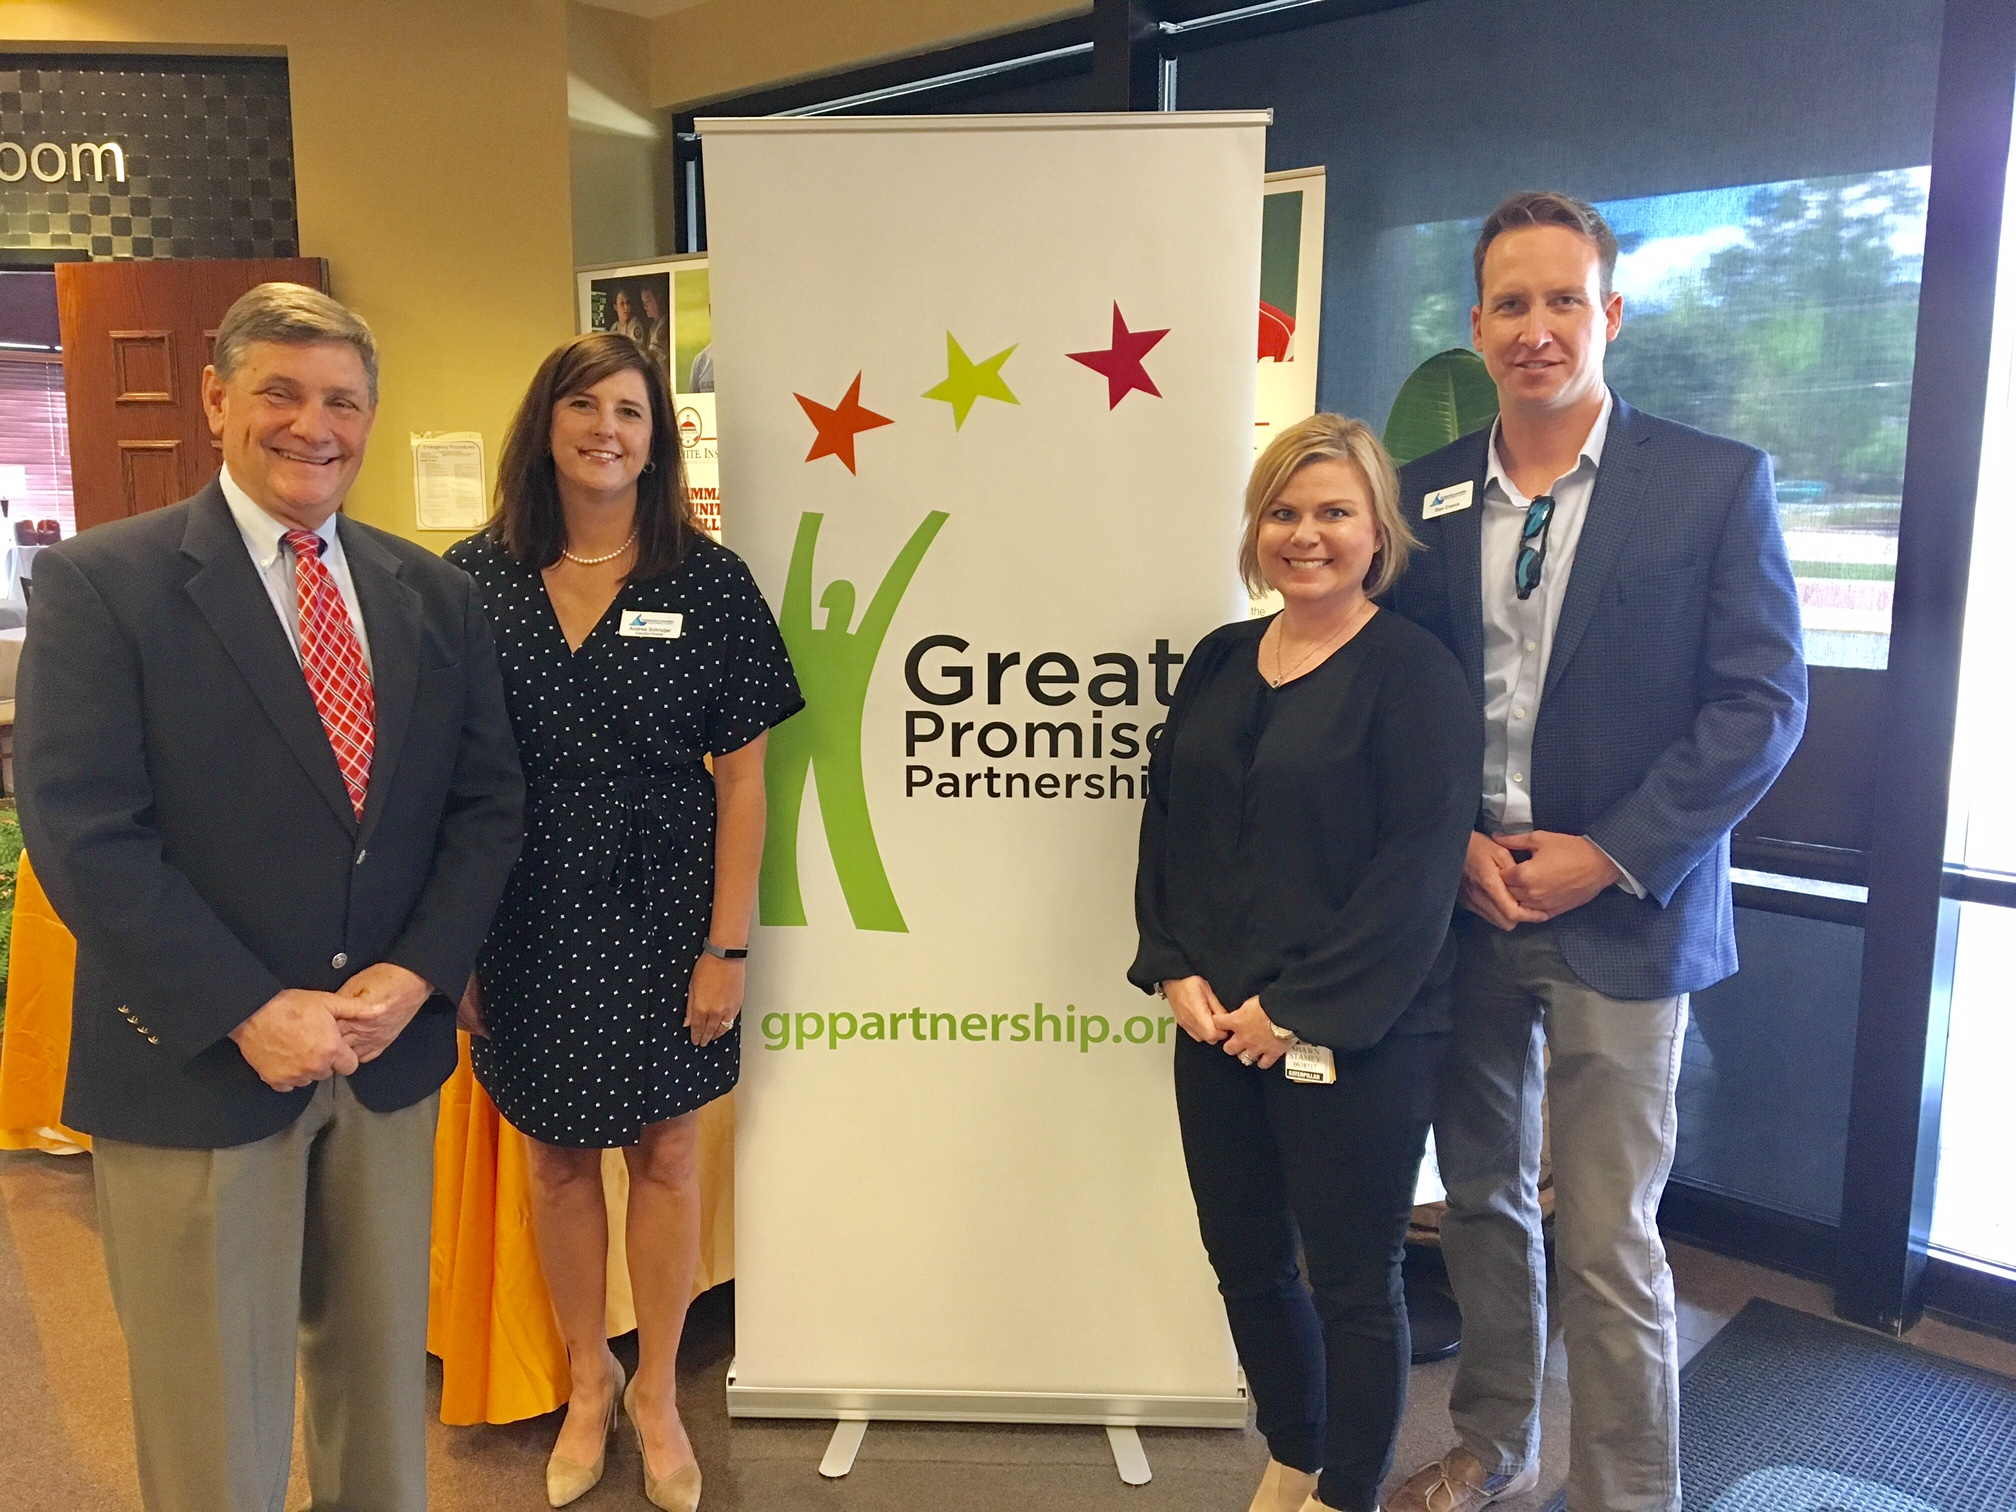 BRAT Highlights Great Promise Partnership to Existing Industries